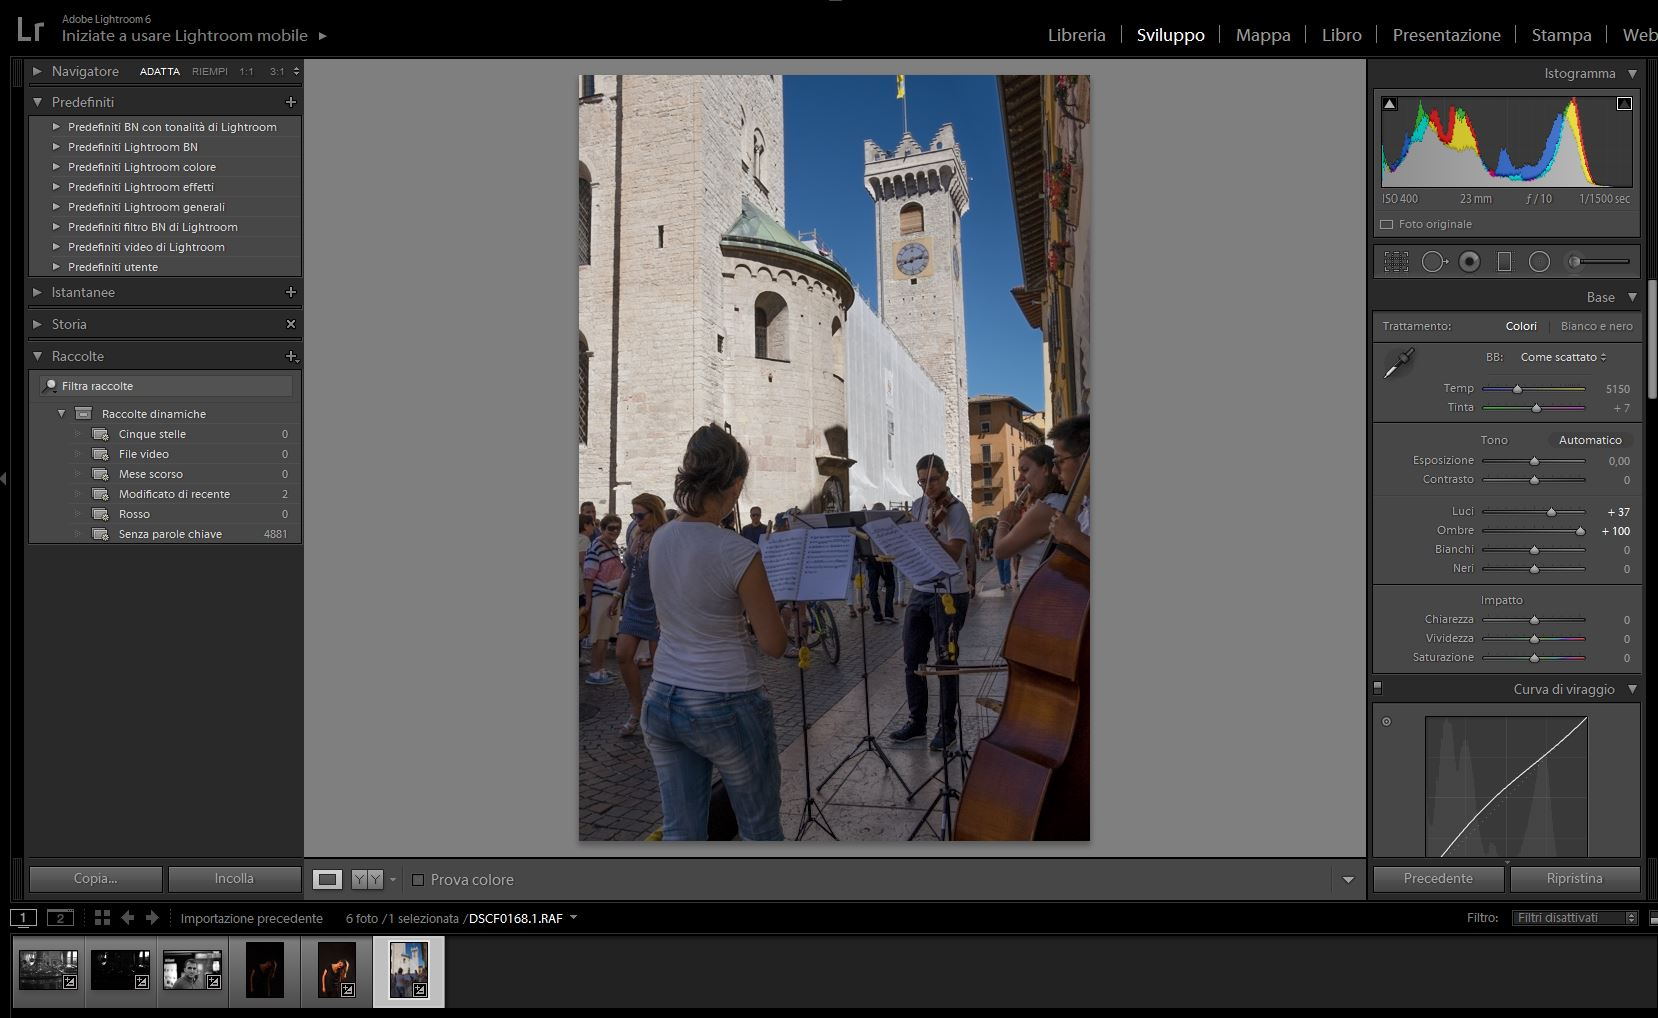 Immagine trattata in Lightroom